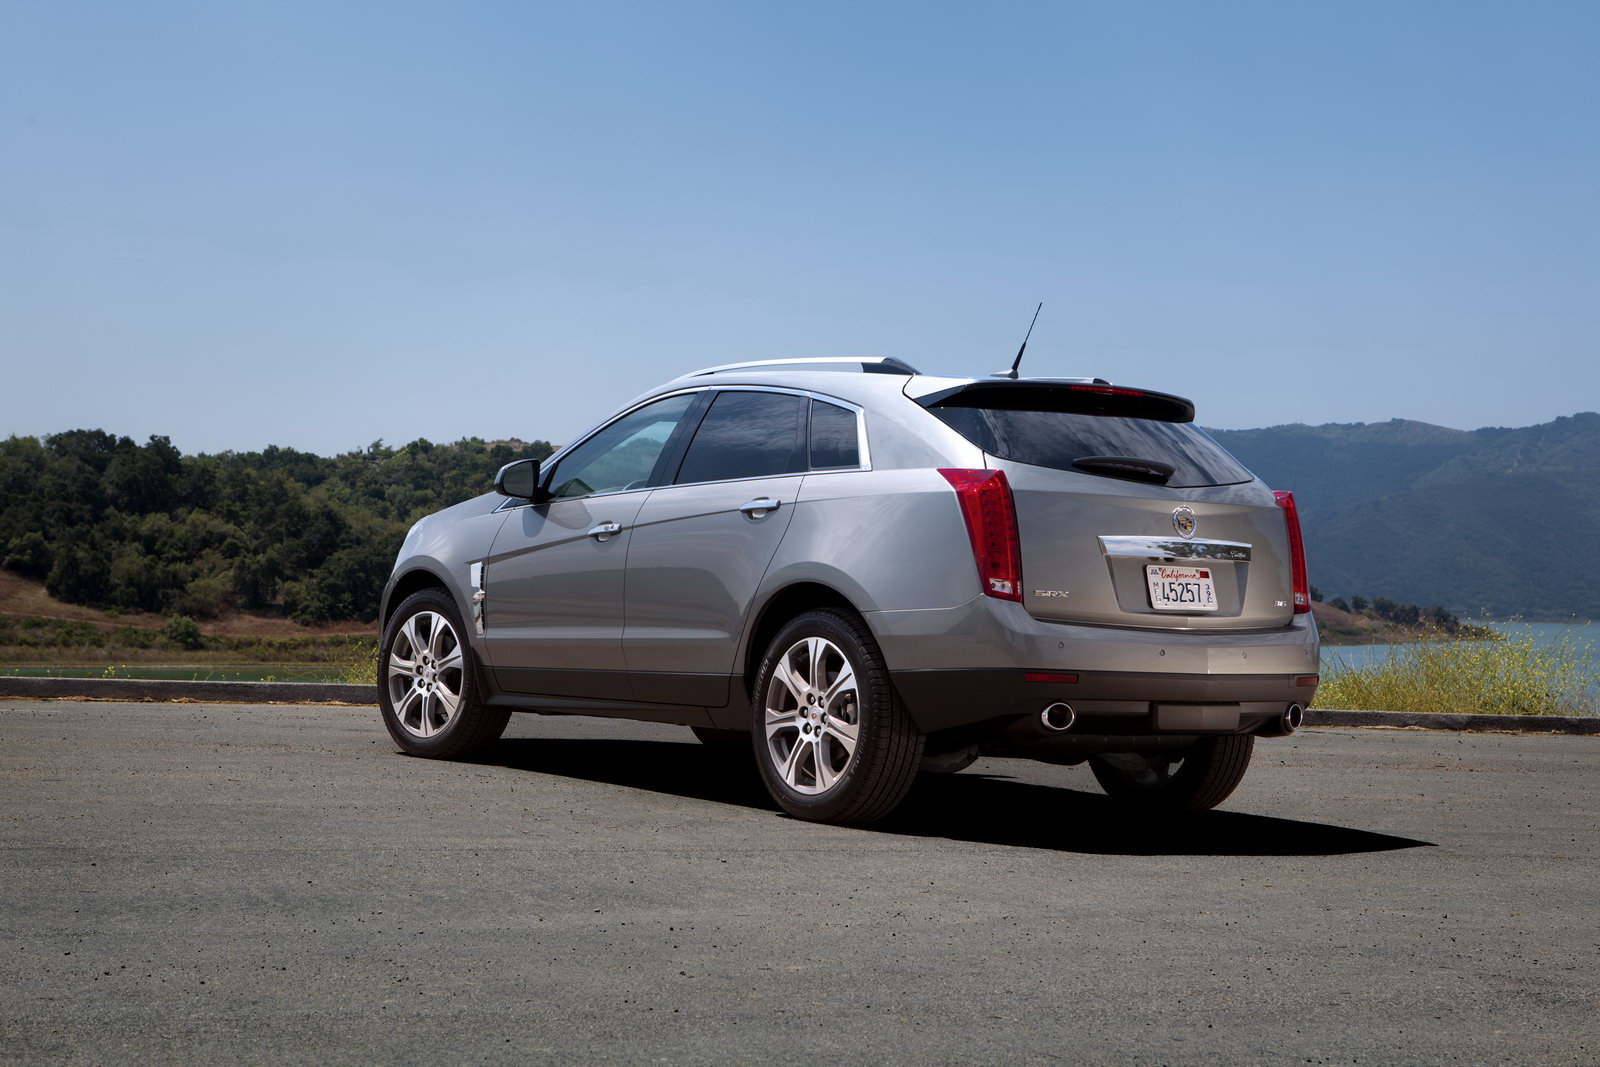 2012 Cadillac Srx Crossover With New Look Machinespider Com